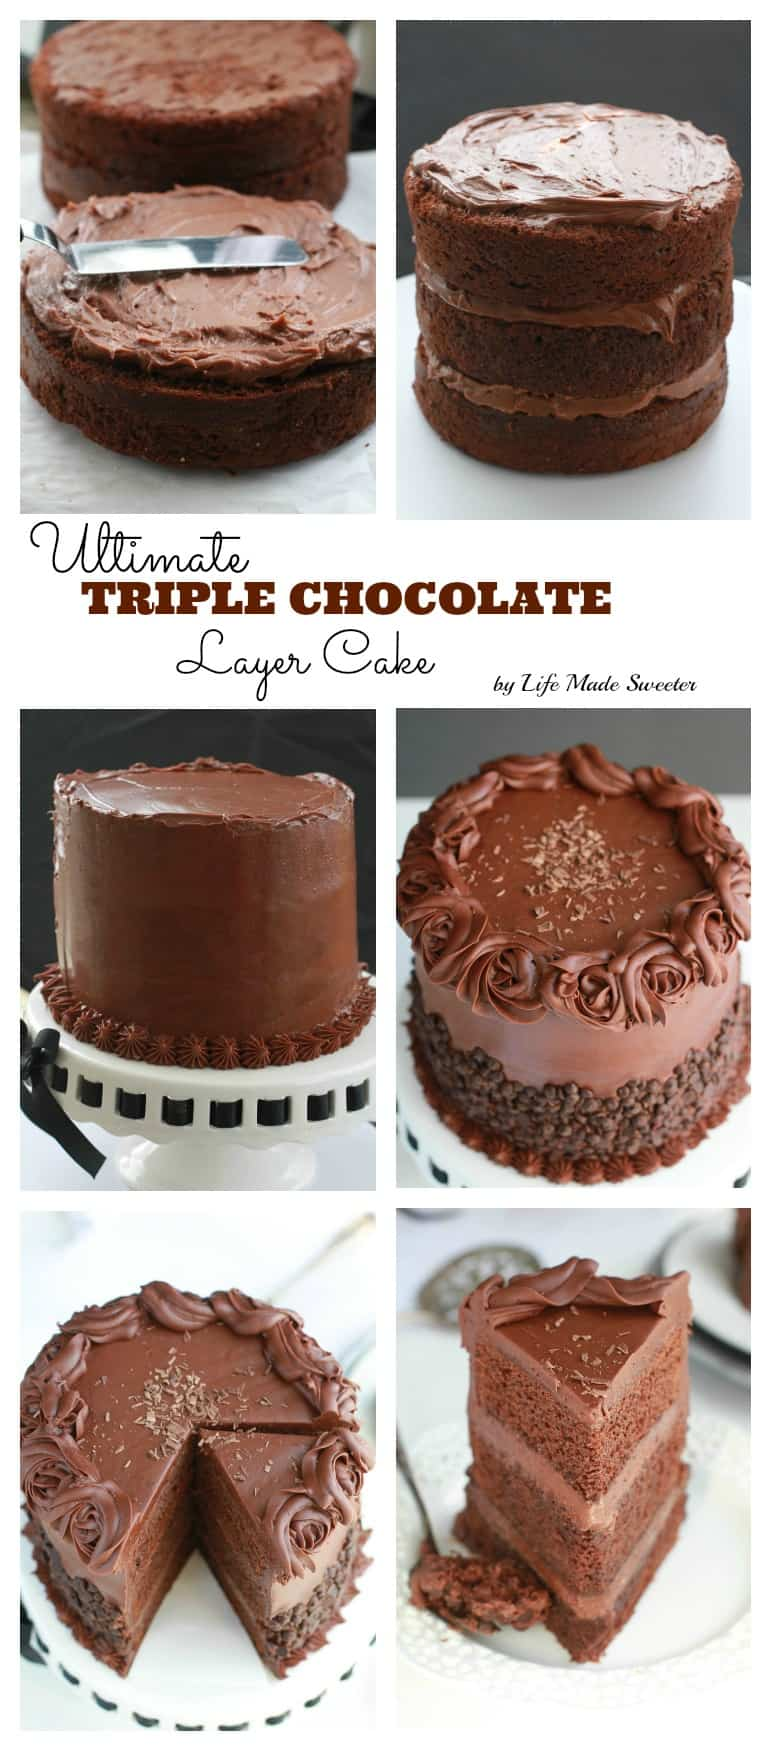 Ultimate Triple Chocolate Layer Cake - A triple layer devil's chocolate cake with milk chocolate frosting and partially covered with mini chocolate chips.